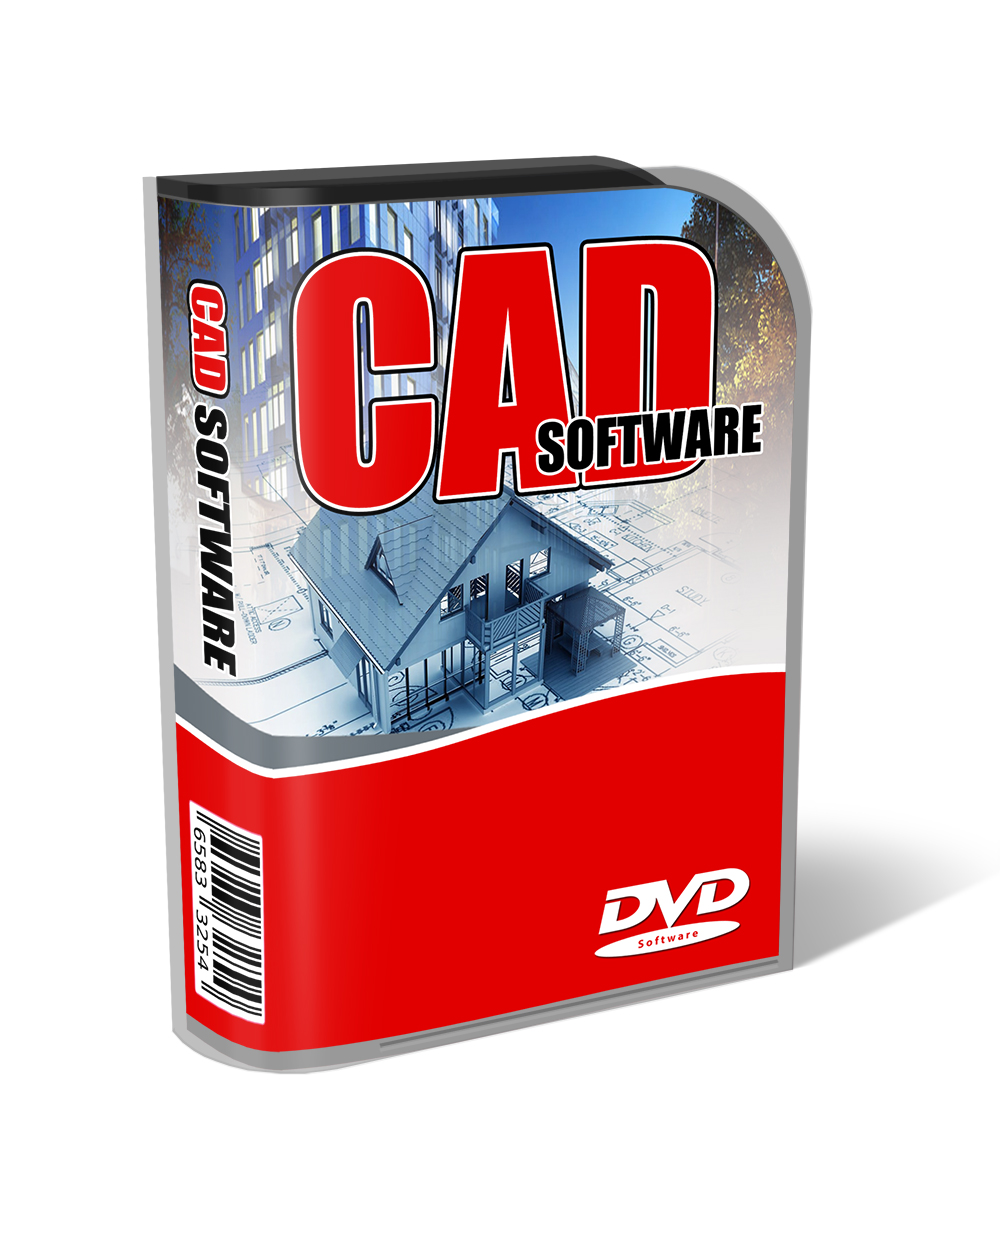 3d Wohnungsplaner App Details Zu 3d Cad Computer Aided Design Full Software Package For Pc Mac Osx